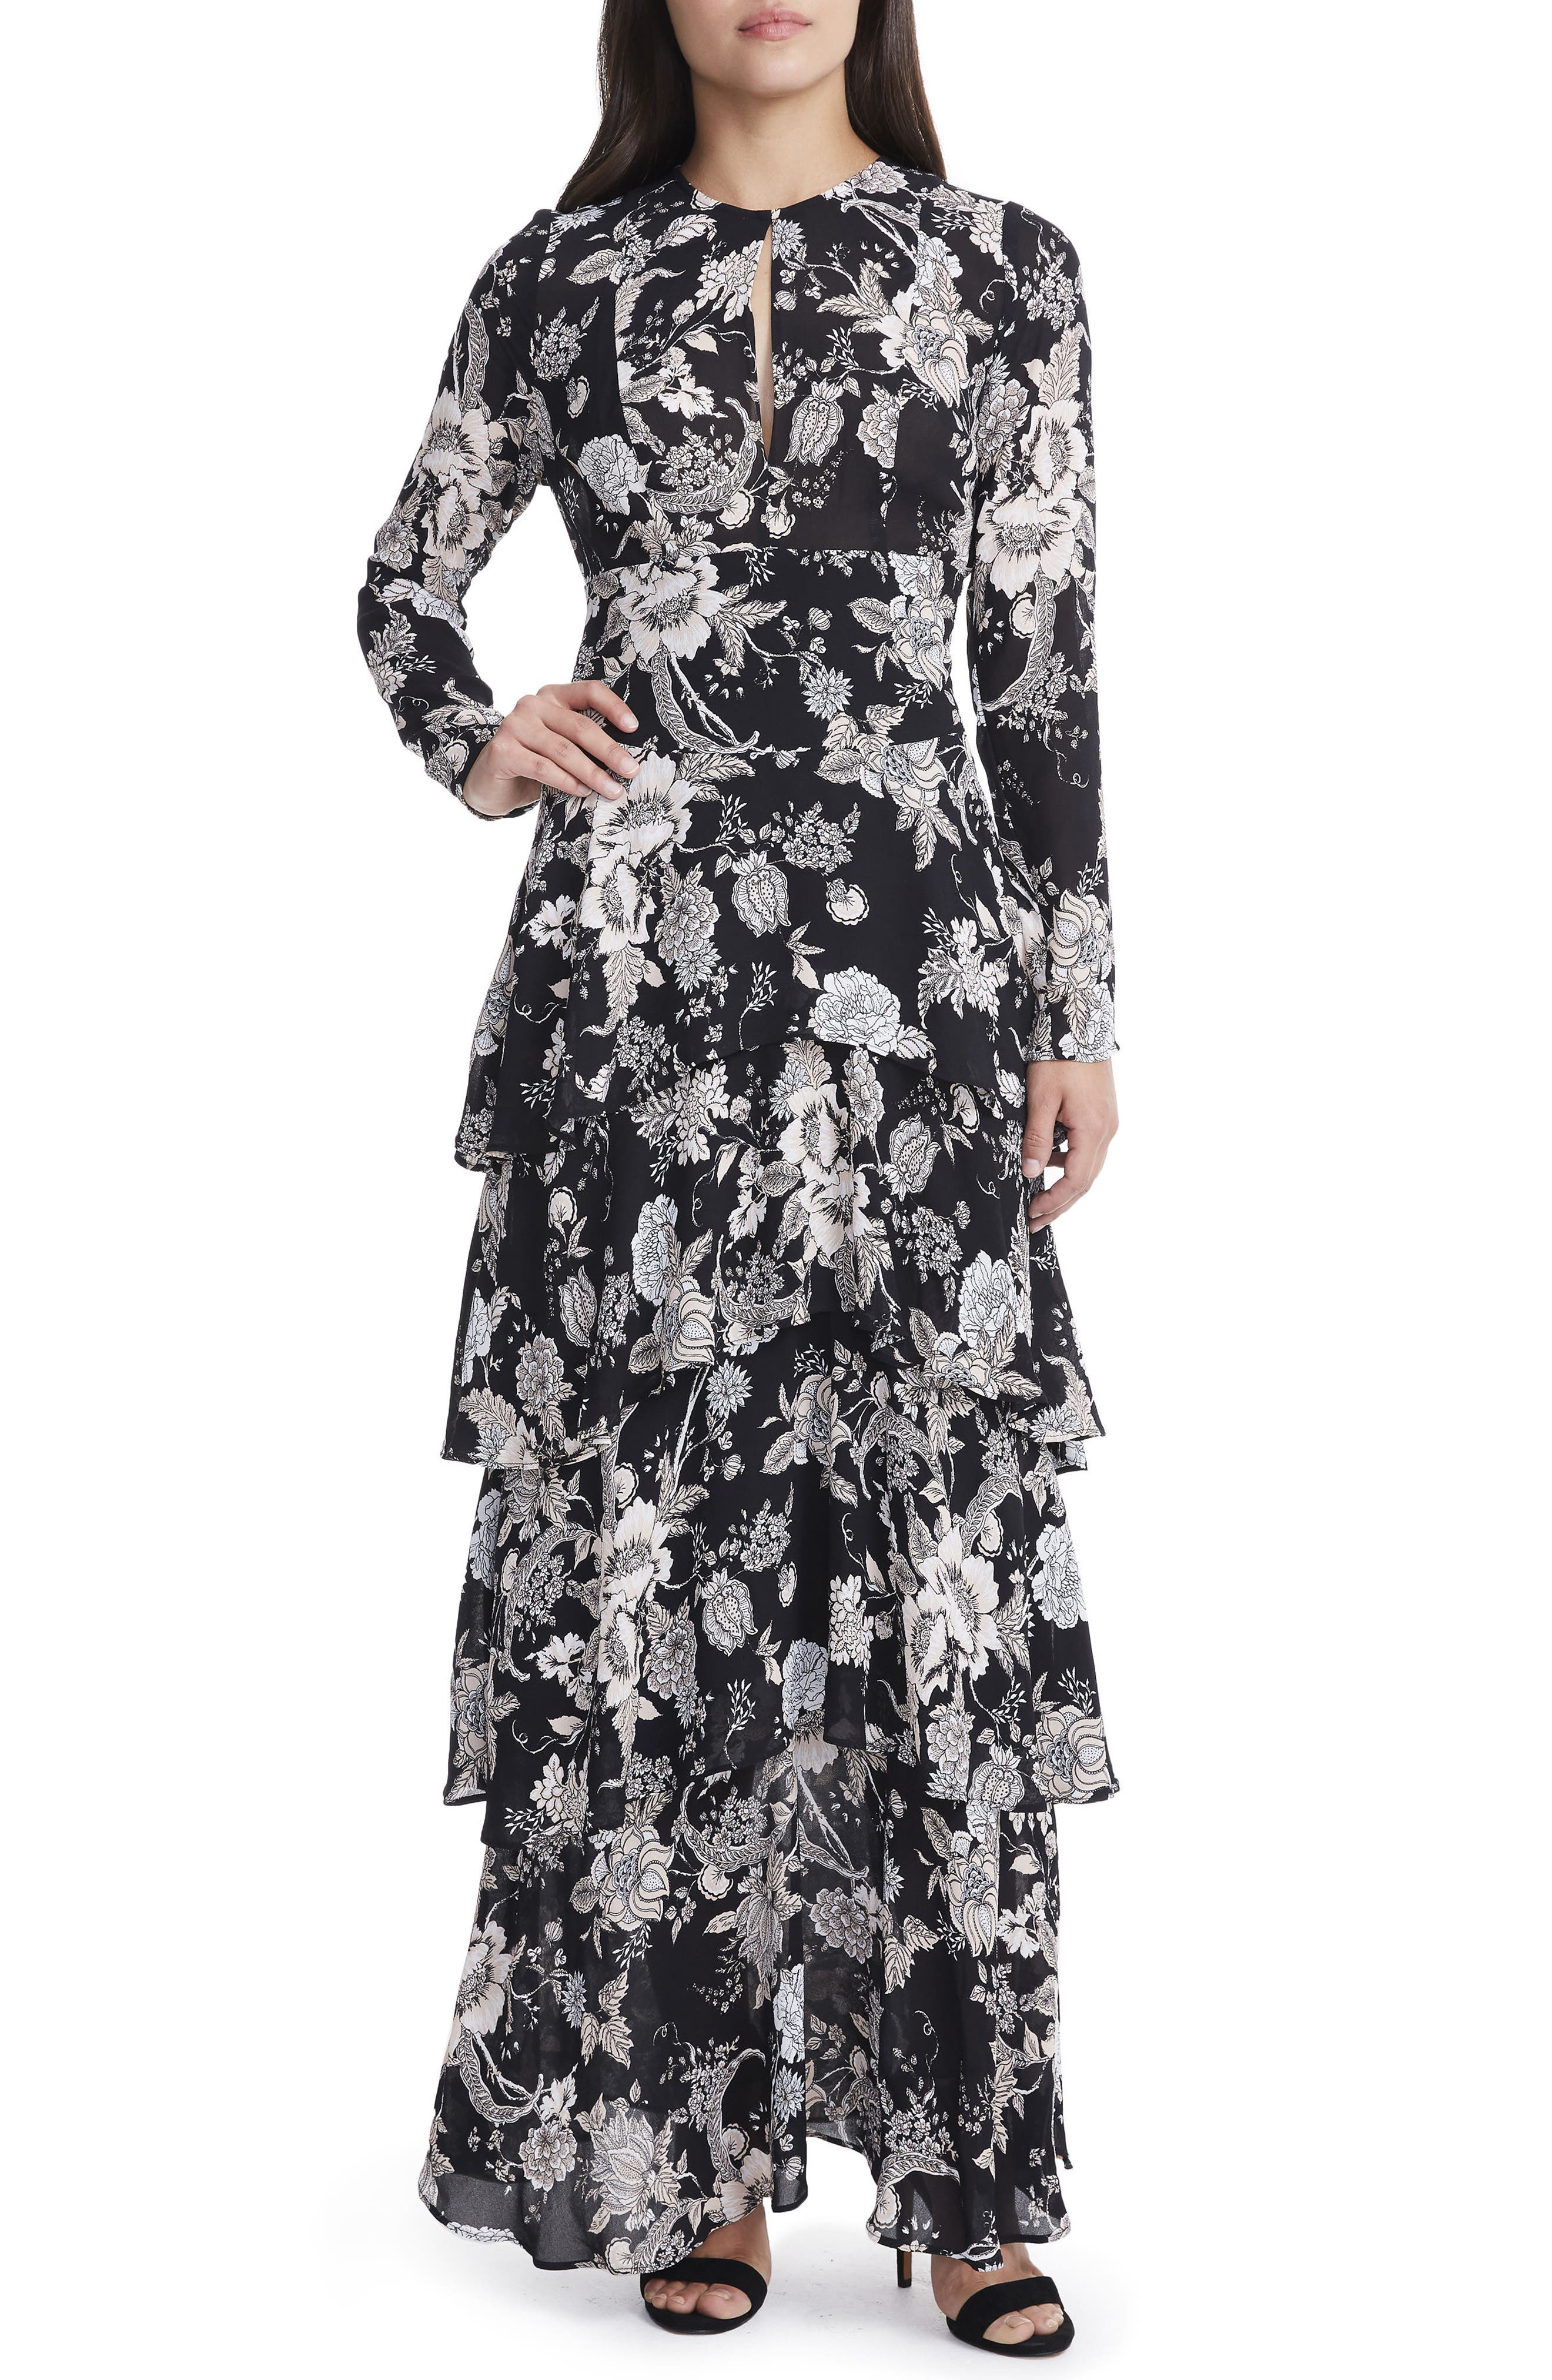 Amabella Tiered Maxi Dress,                             Main thumbnail 1, color,                             Noir Bouquet